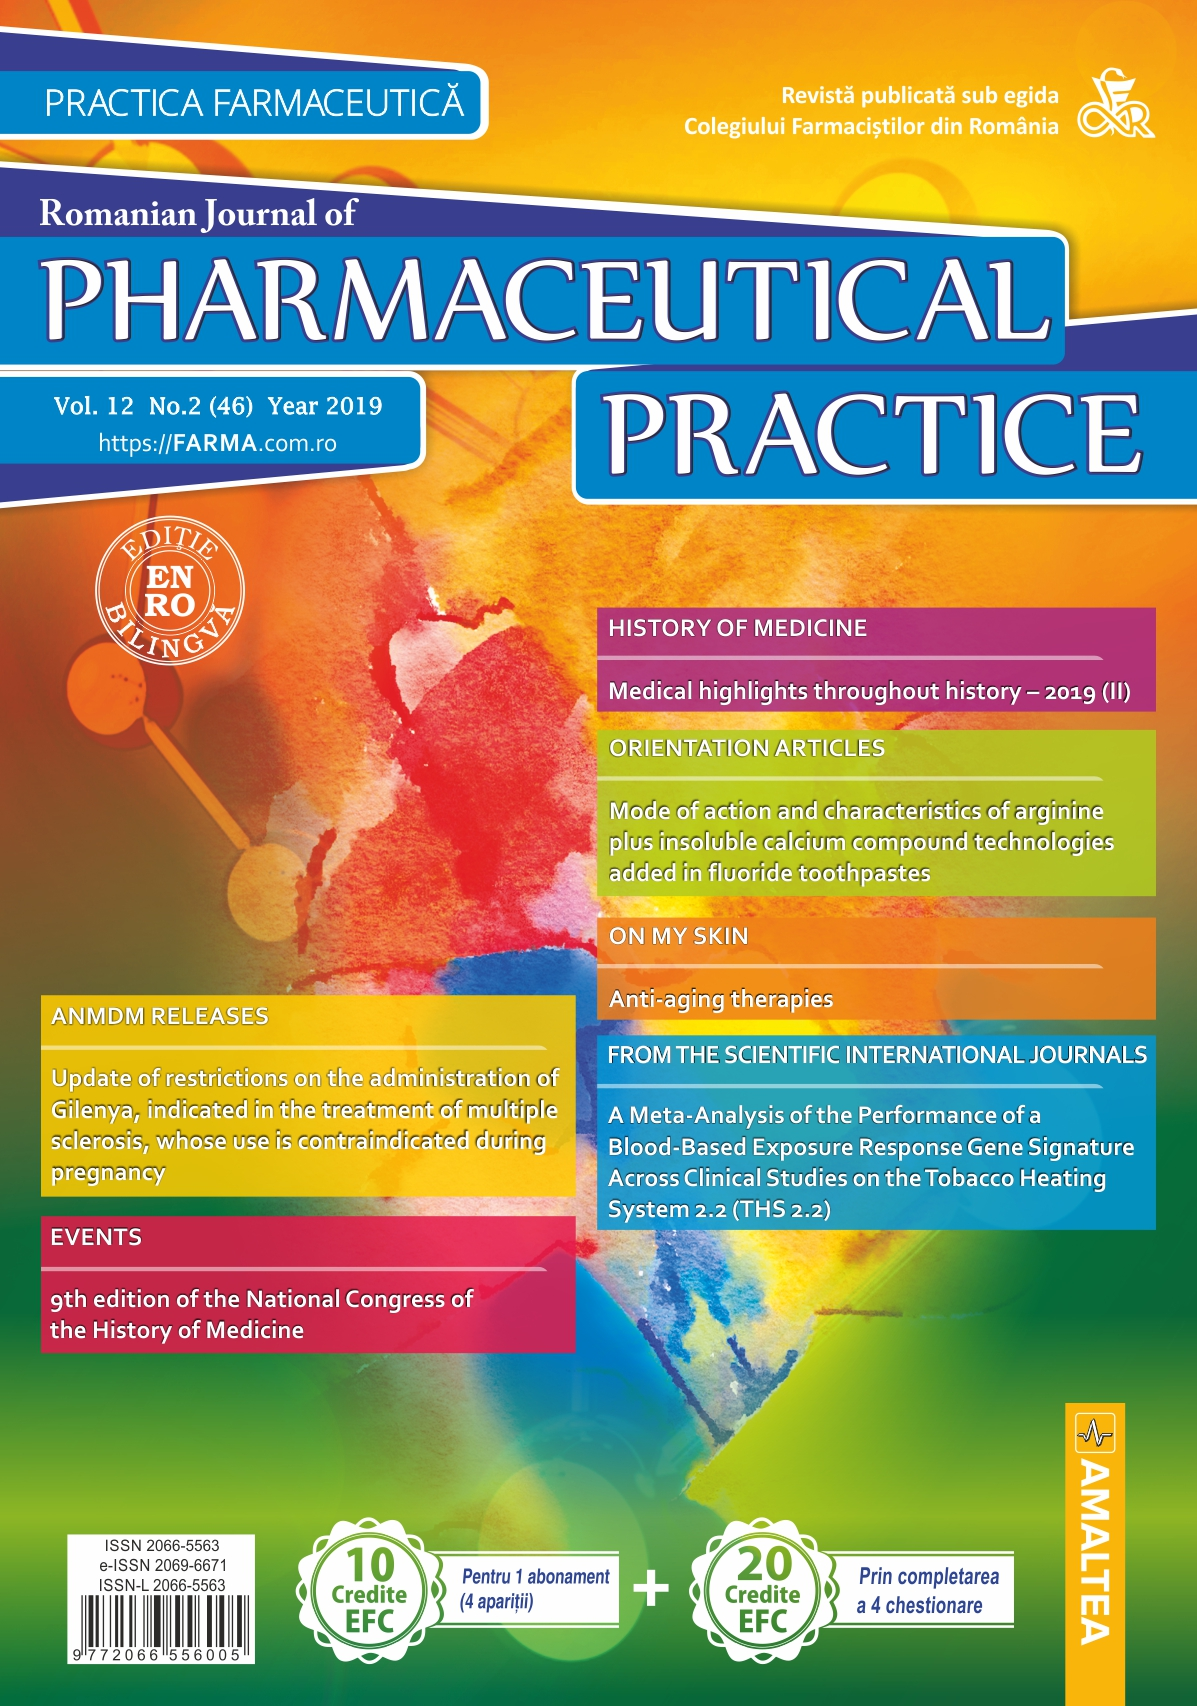 Romanian Journal of Pharmaceutical Practice - Practica Farmaceutica, Vol. 12, No. 2 (46), 2019